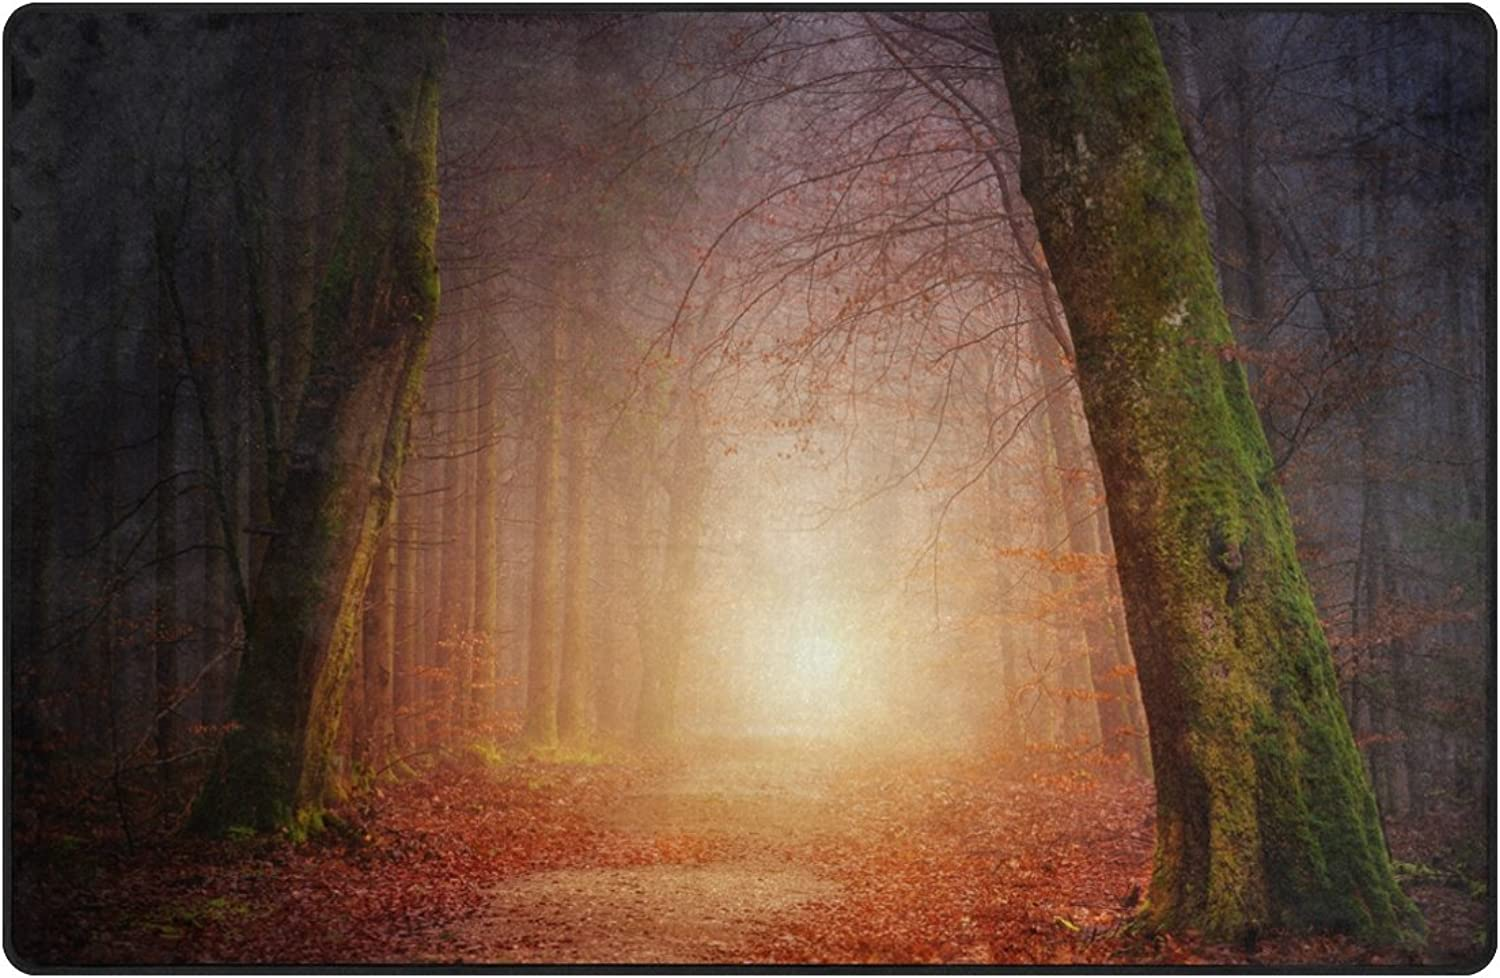 Area Rugs 60 x 39 inch Modern Soft Non-Slip Floor Mats Nature Wood Tree Light Sun Fog Foggy Forest Doormat Carpet for Home Decoration by Josid